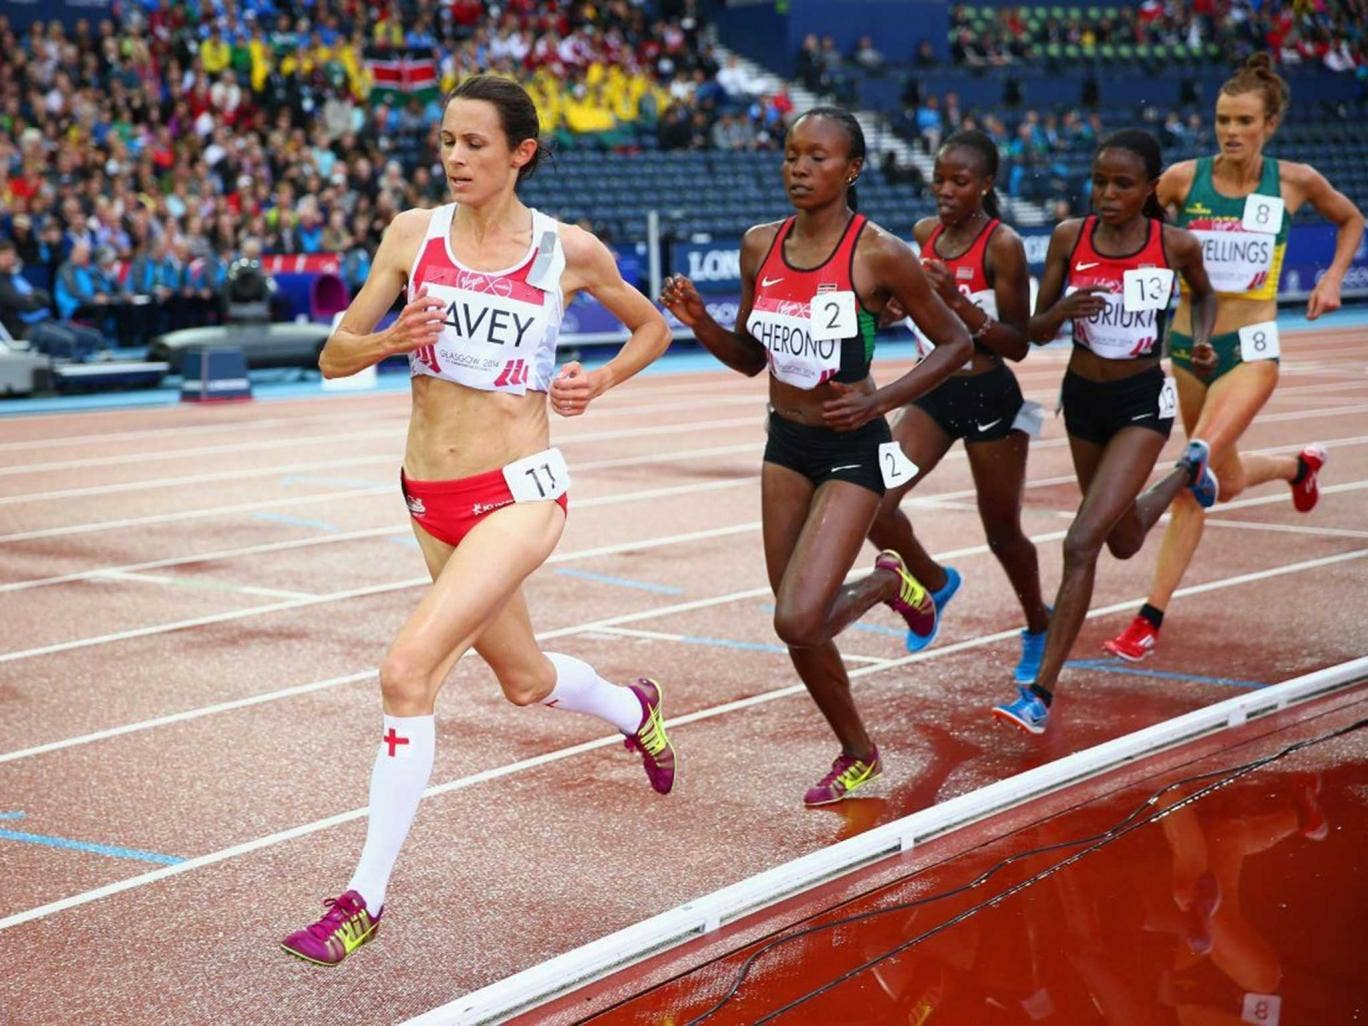 Leading lady: Jo Pavey sets the pace in the 5,000m before being overtaken by the Kenyans with 600 metres to go